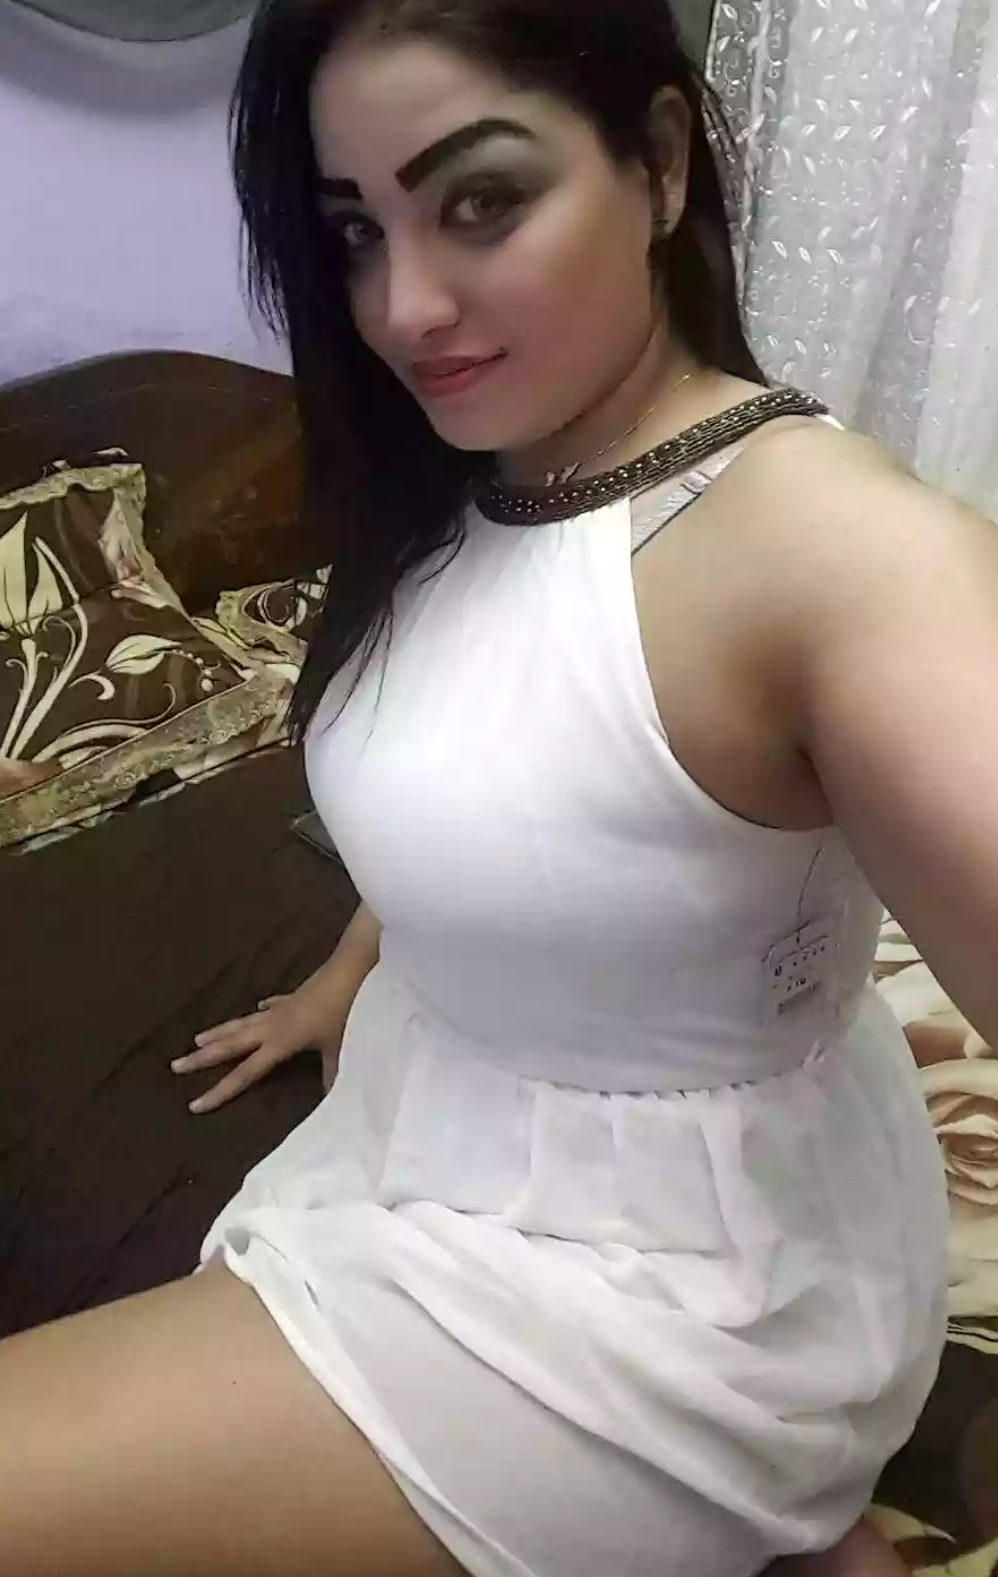 Pretty hot girl taking selfie